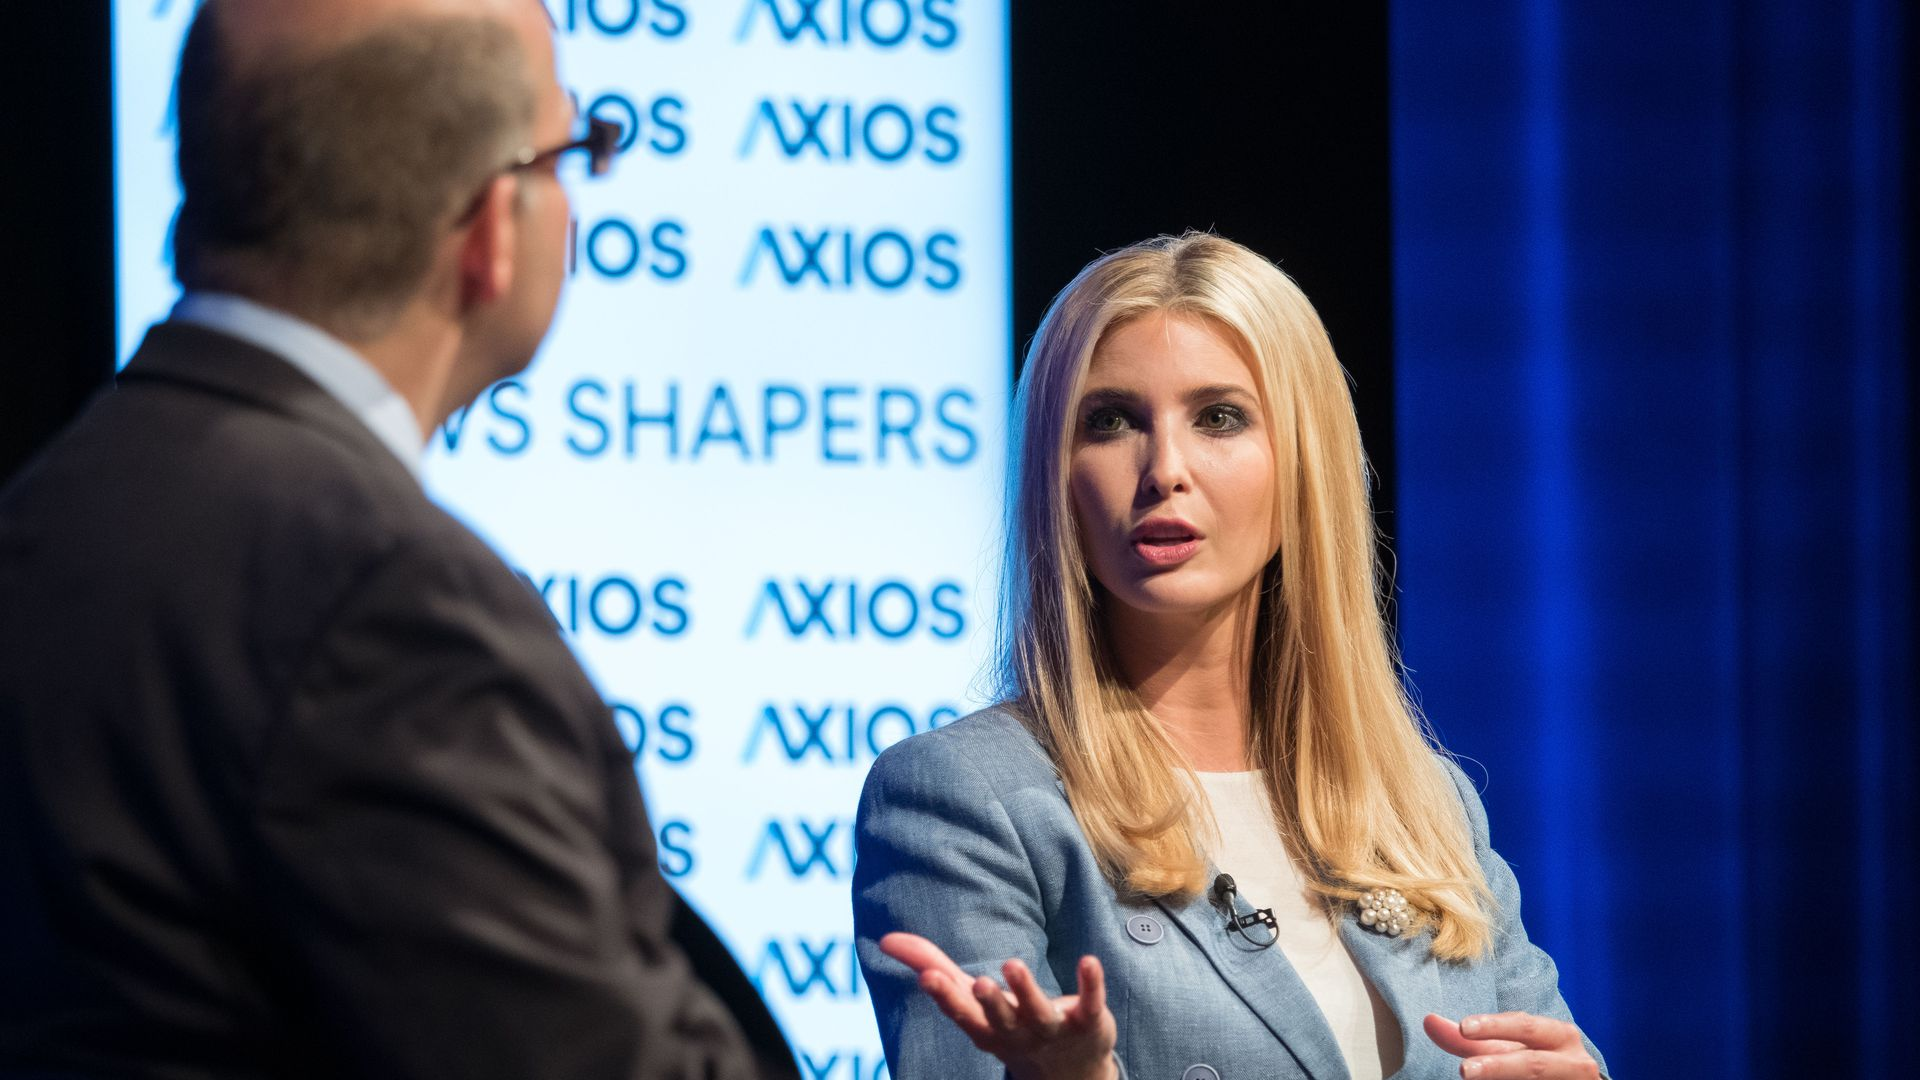 Ivanka Trump at Axios event